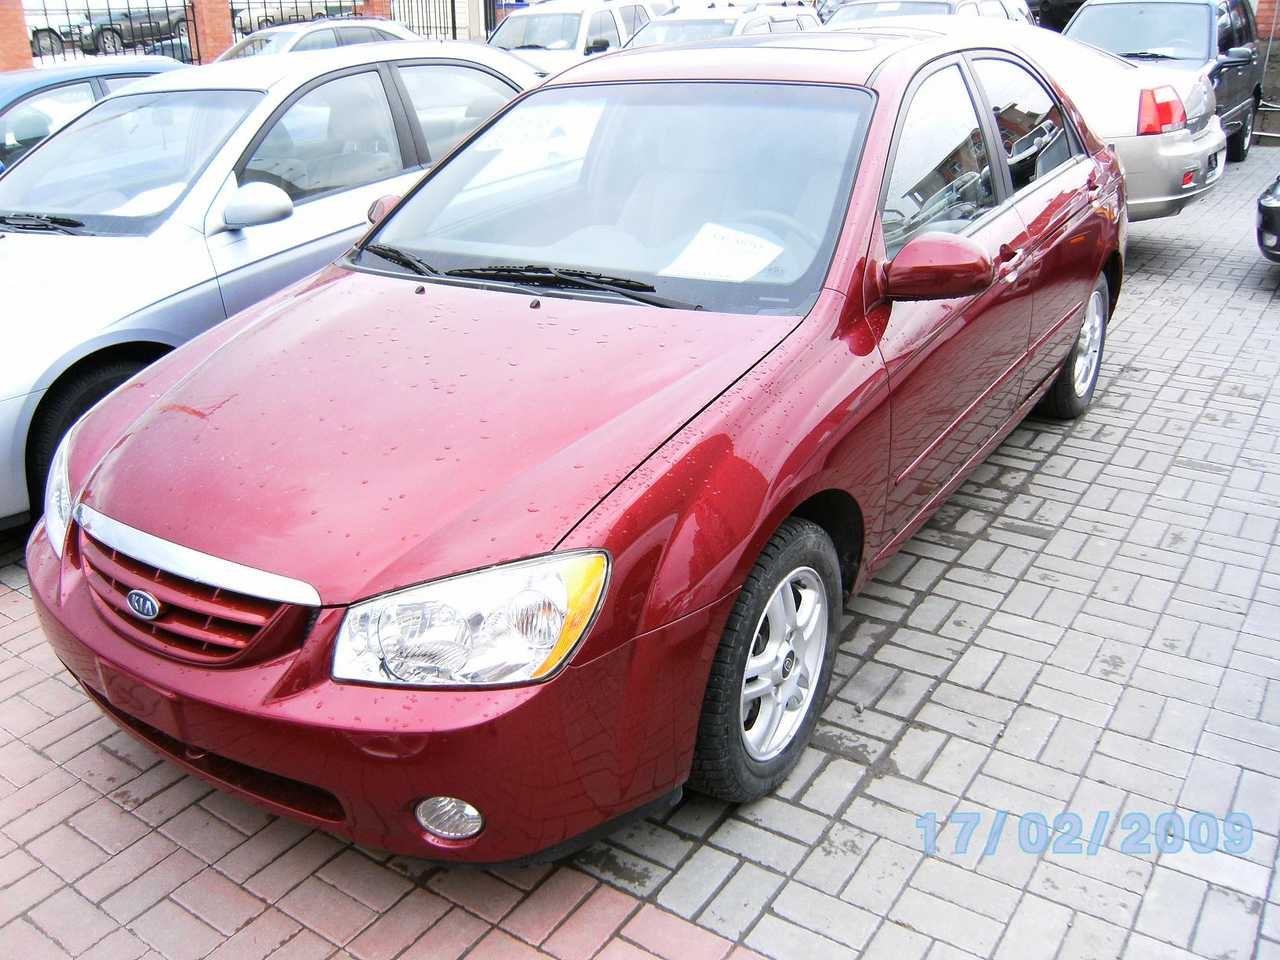 2005 kia spectra pictures 2000cc gasoline ff manual for sale rh cars directory net 2005 kia spectra manual transmission problems 2005 kia spectra owners manual